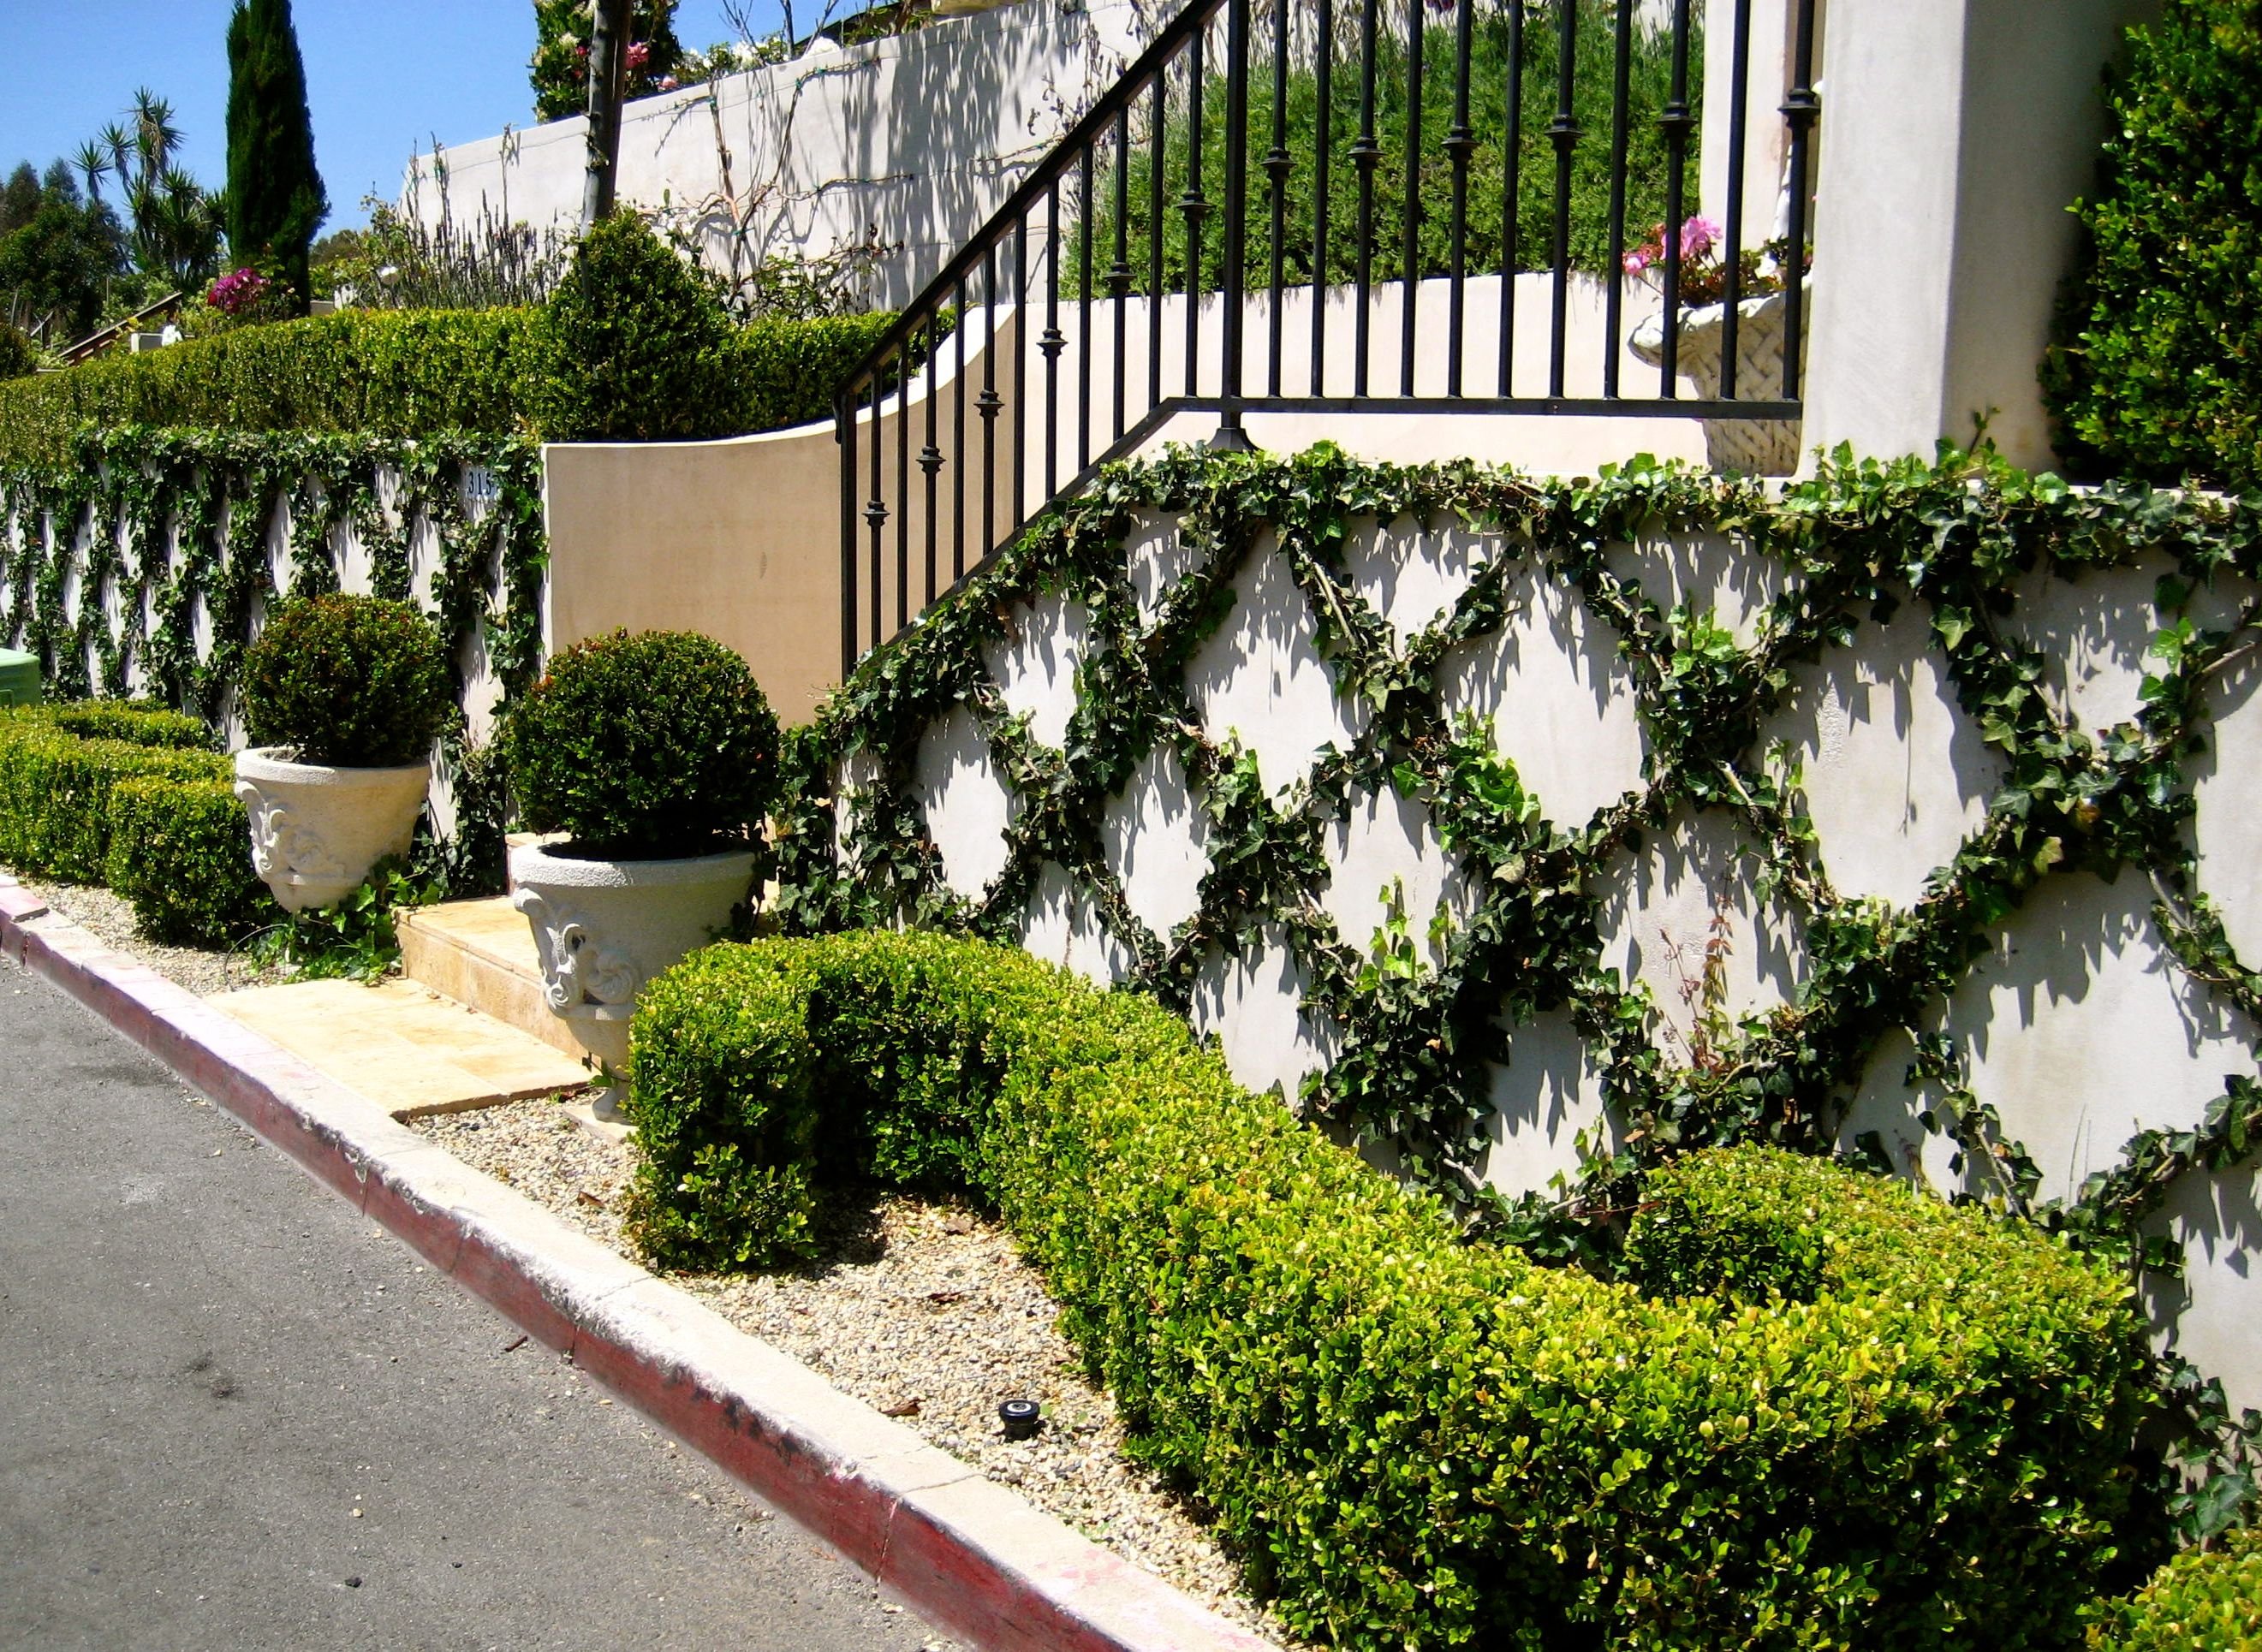 european garden design parterre scroll with boxwood in a french garden - European Garden Design